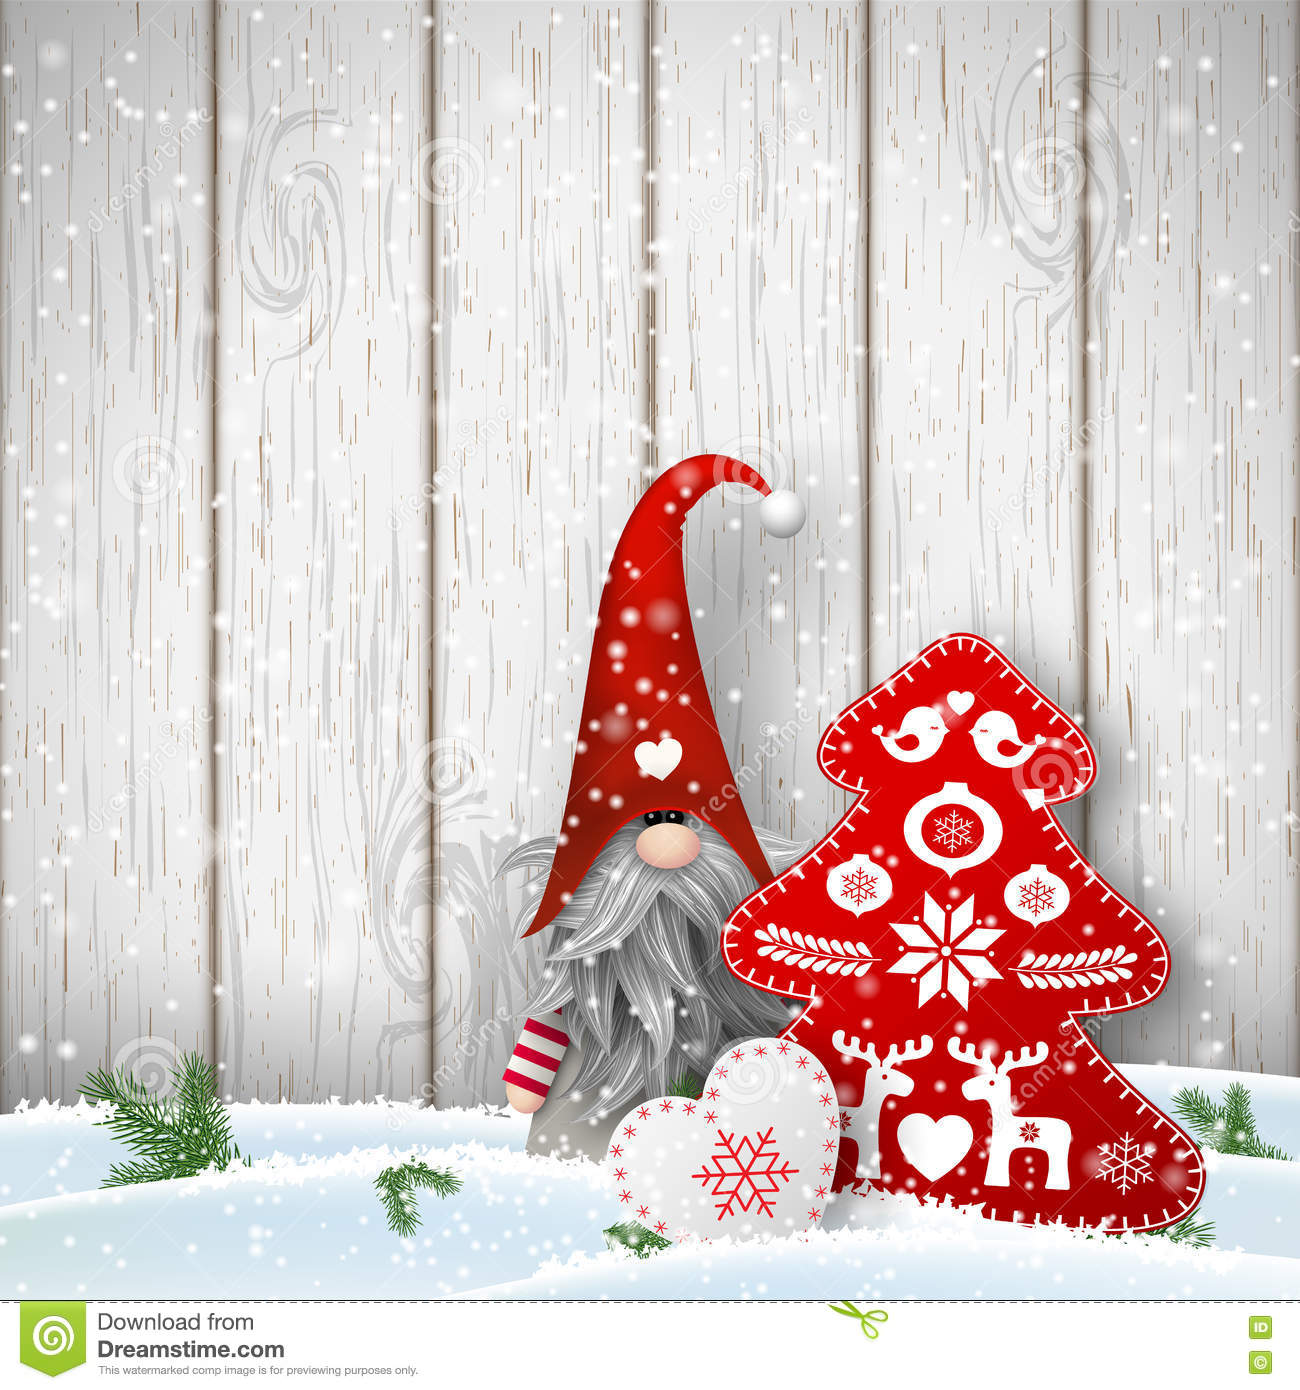 scandinavian christmas traditional gnome tomte with other seasonal decorations illustration - Gnome Christmas Decorations